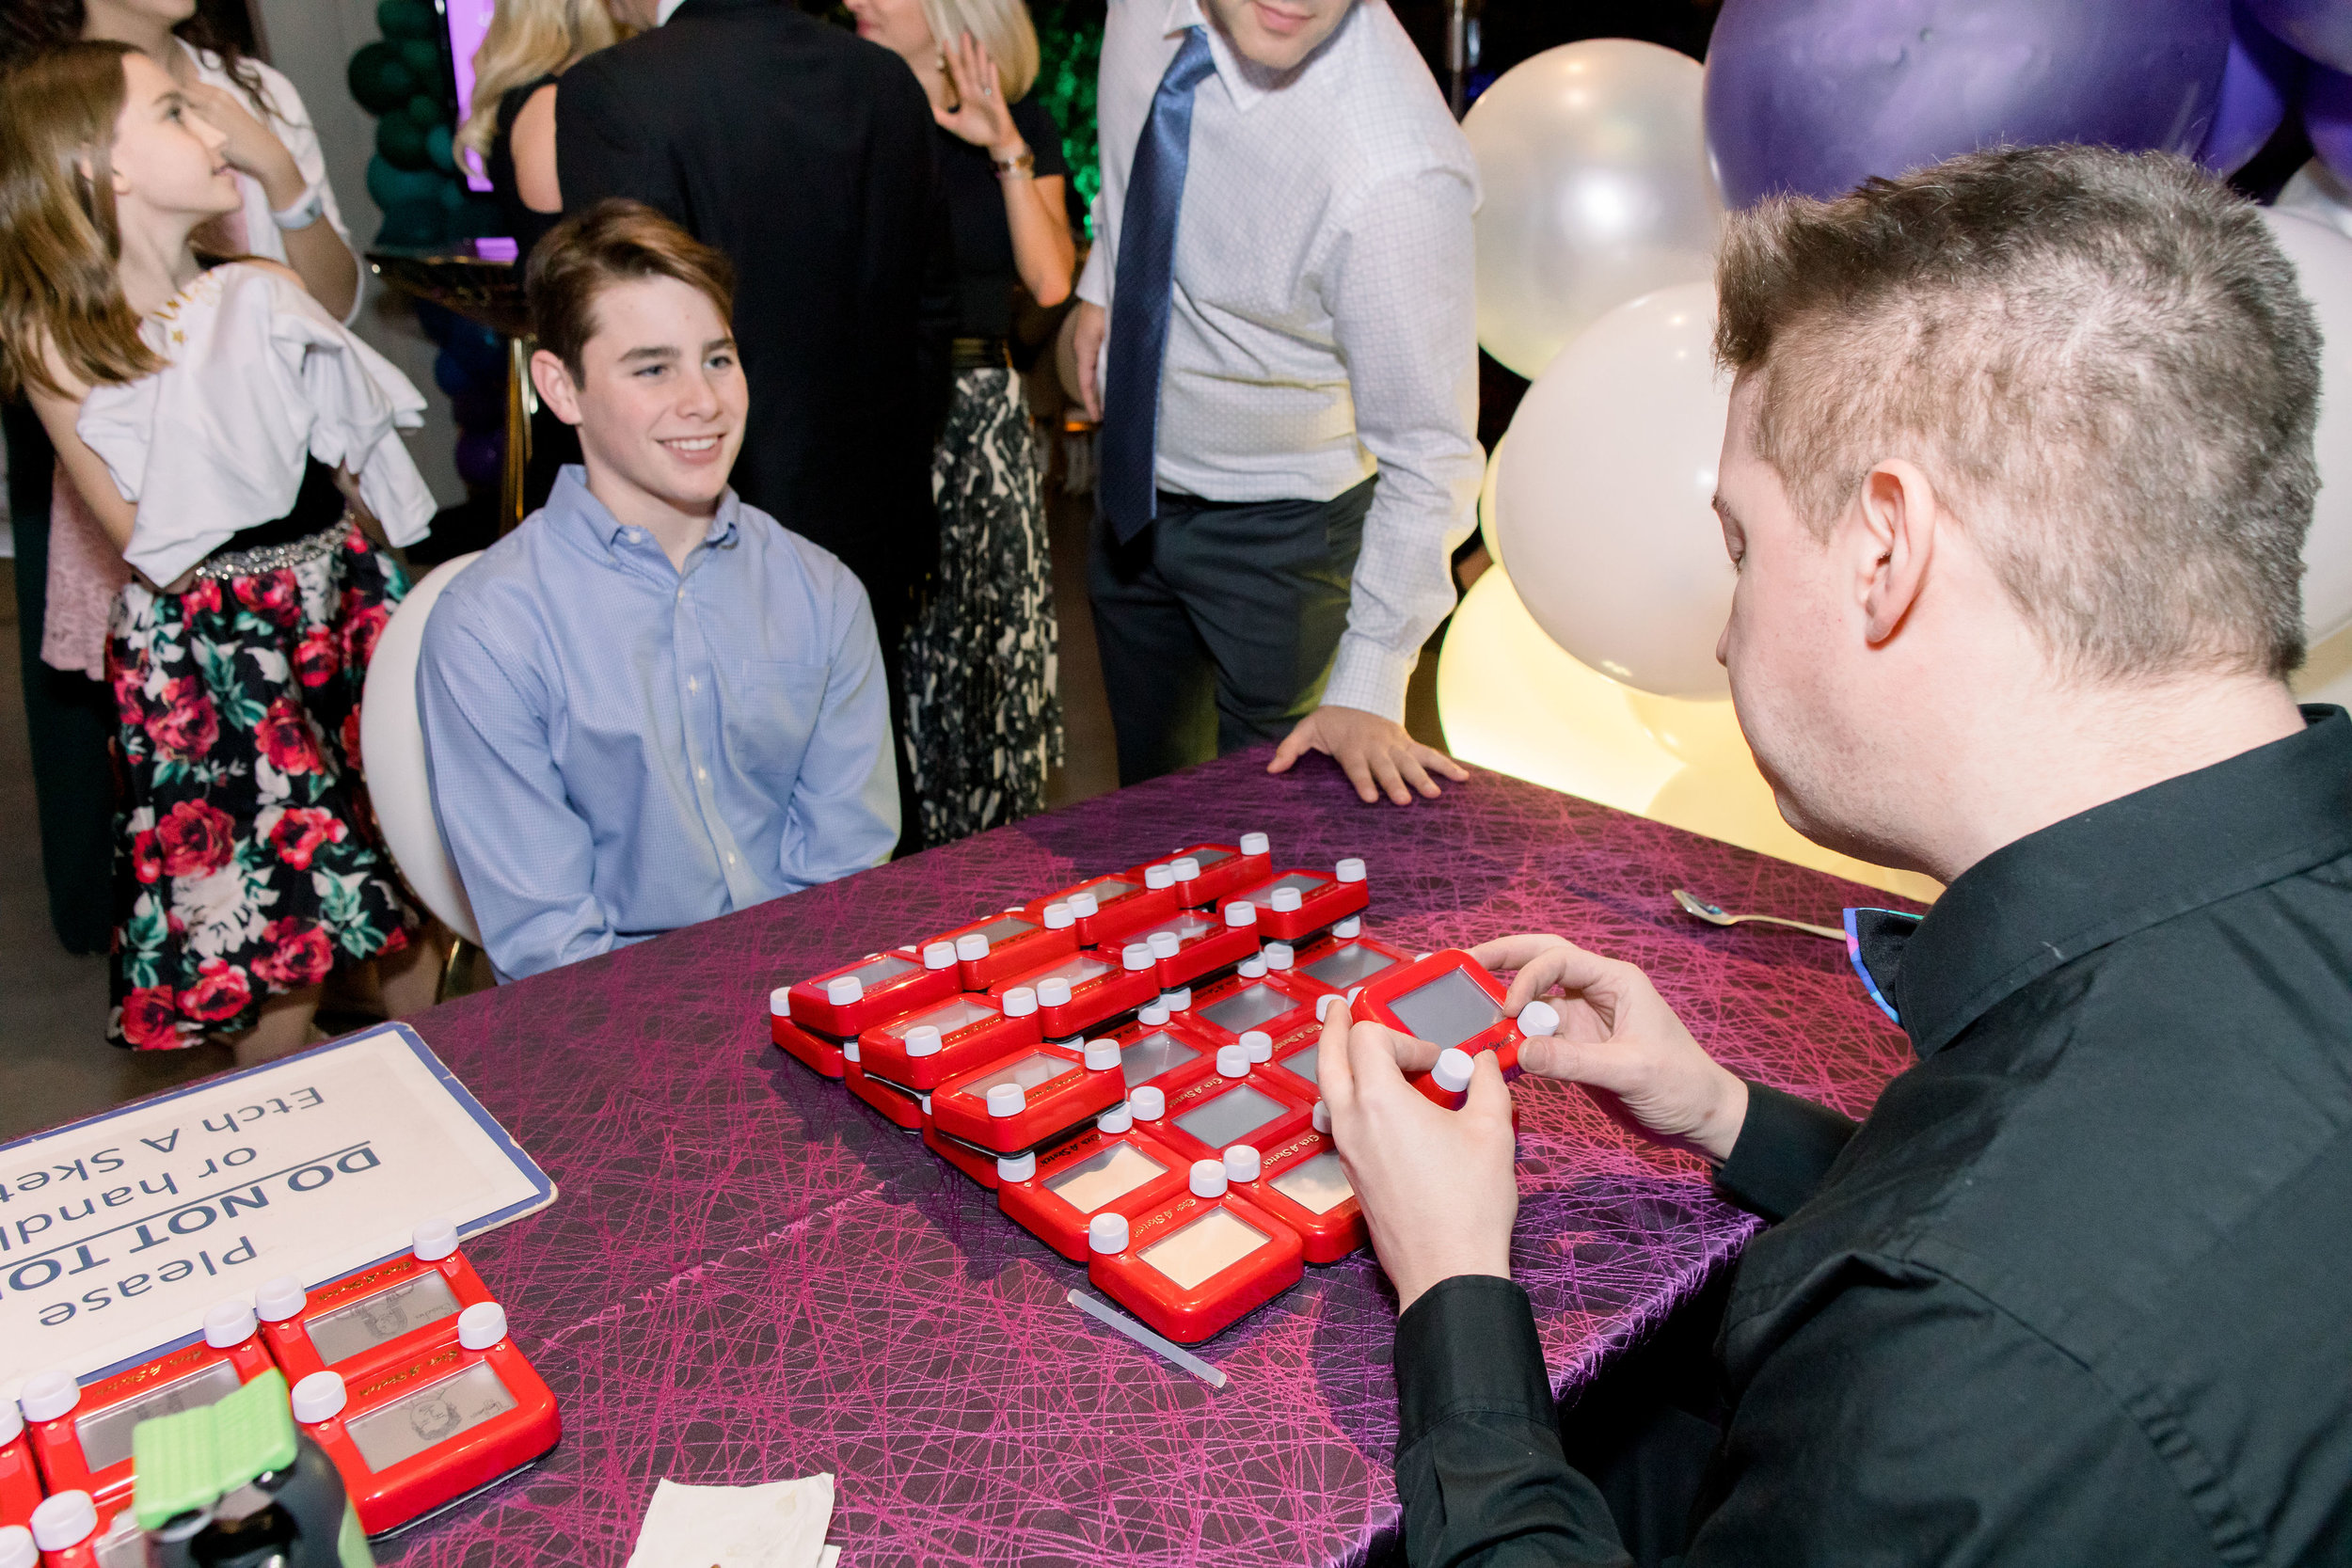 51 bat mitzvah party entertainment etch a sketch drawings etch u pose for a picture portrait on etch a sketch Life Design Events photos by Stephanie Heymann Photography.jpg